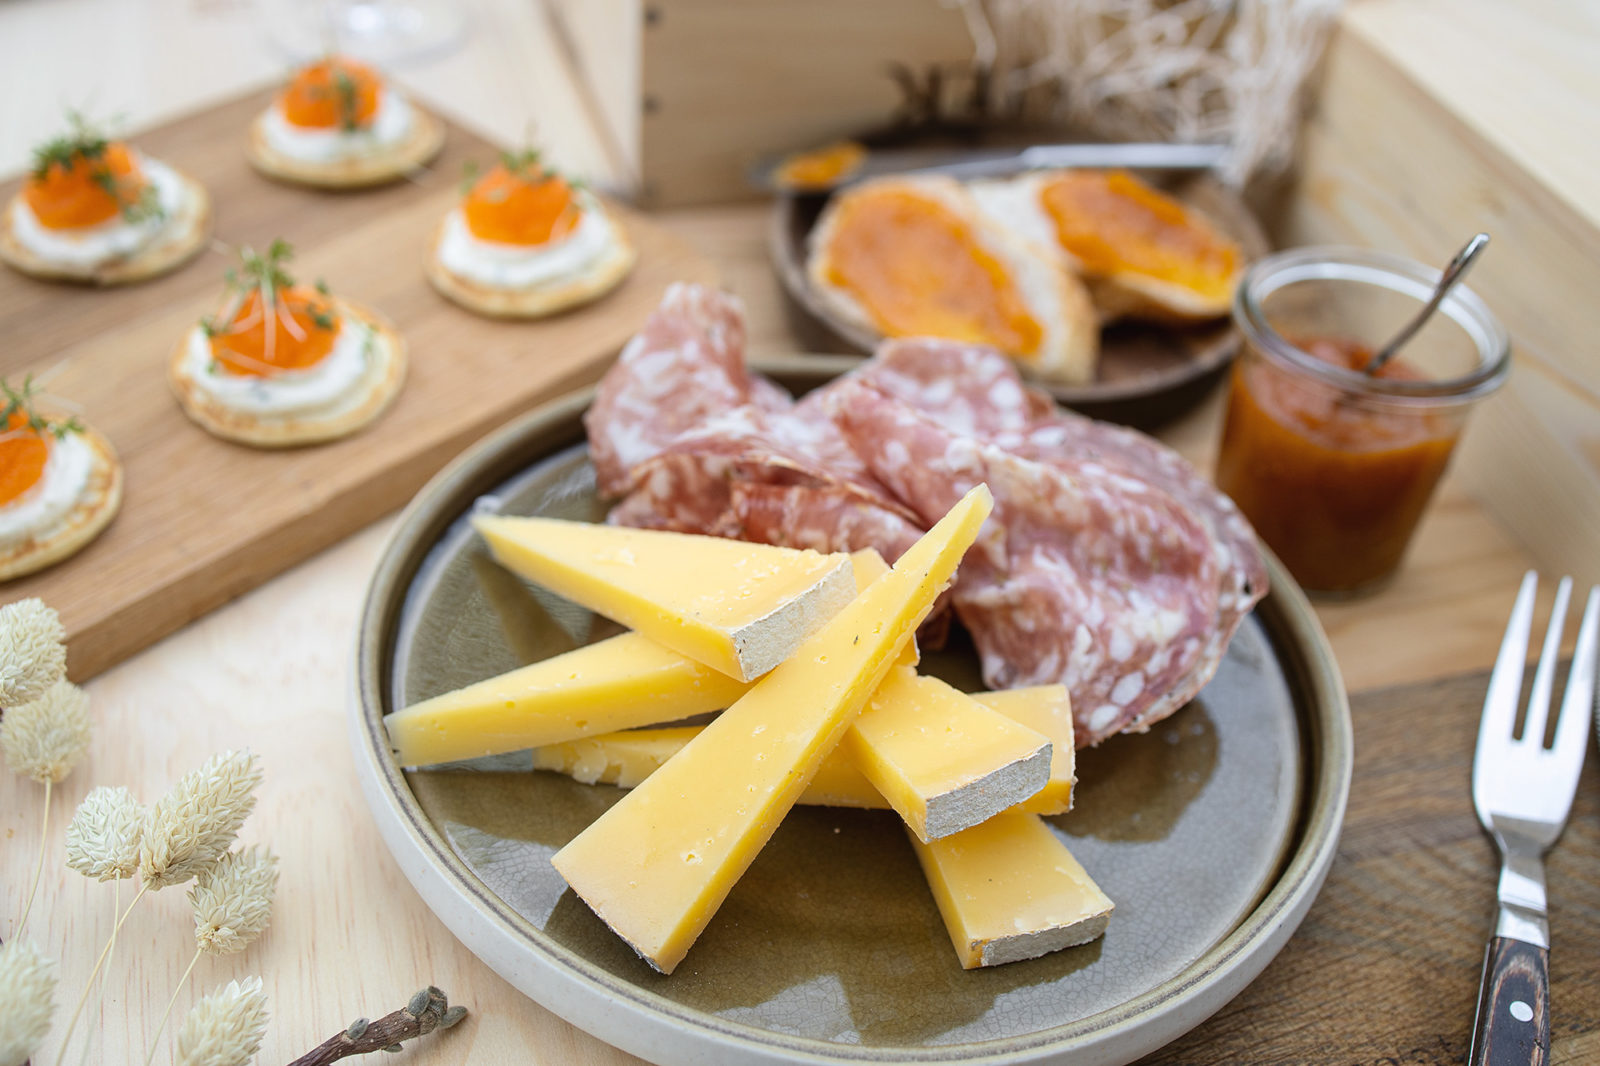 A spread of hams, cheeses, blinis and marmelade, as found in the Weekend pack at Vinbaren's Delicatessen, located at Britannia Hotel in Trondheim, Norway.